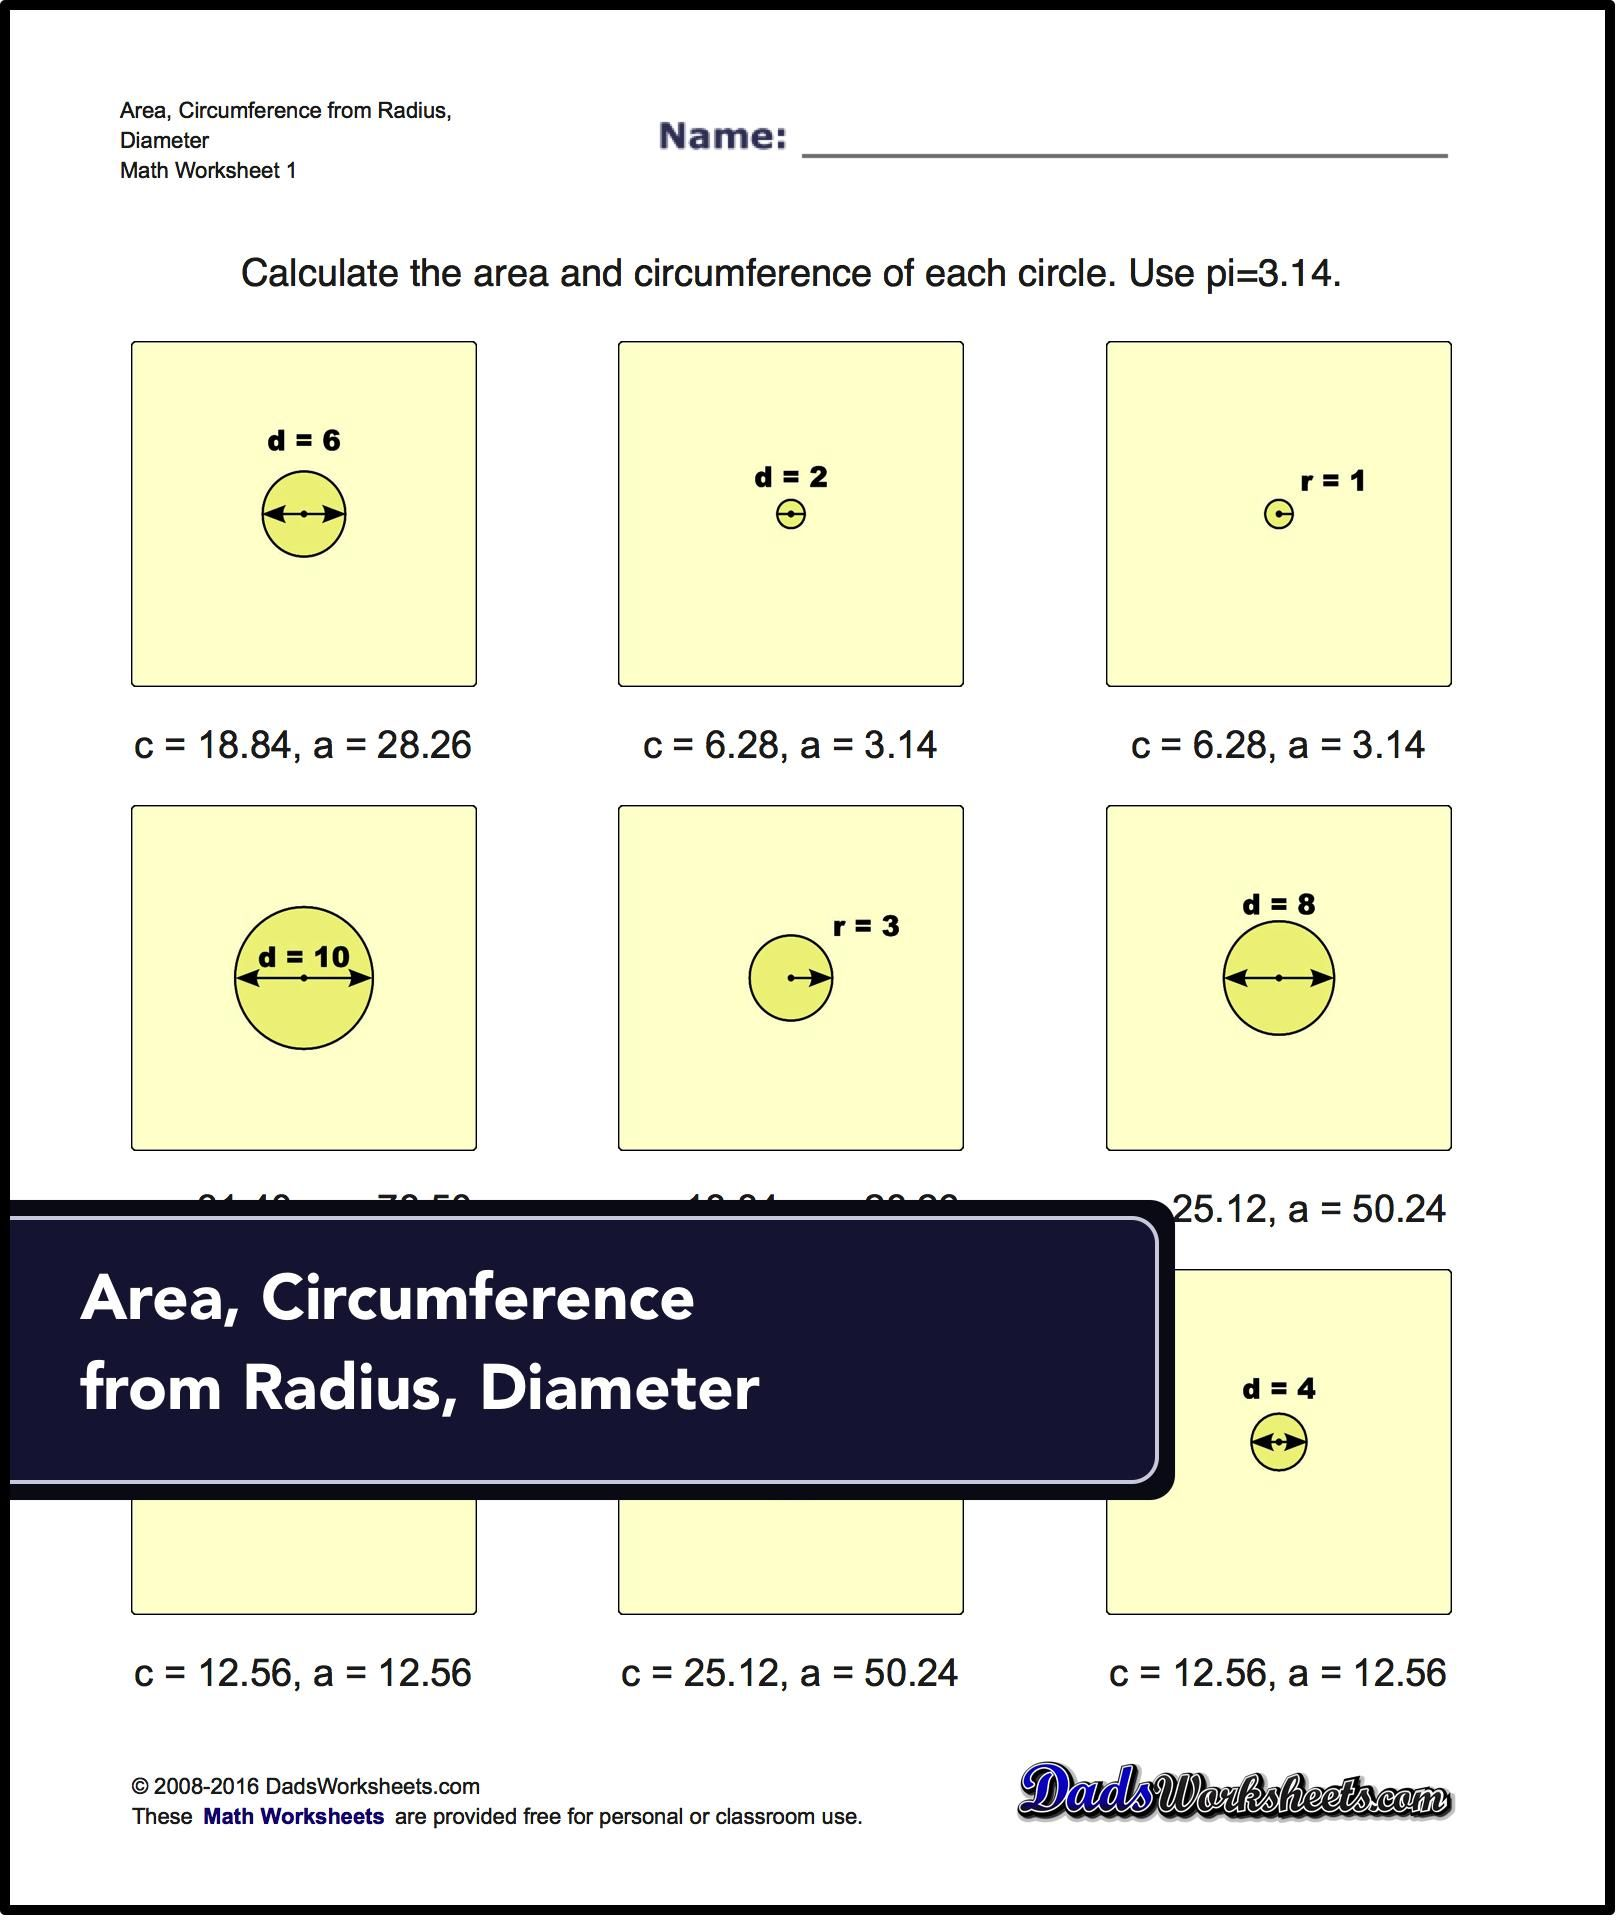 Geometry Worksheets With Problems Calculating A Circle S Area And Circumference